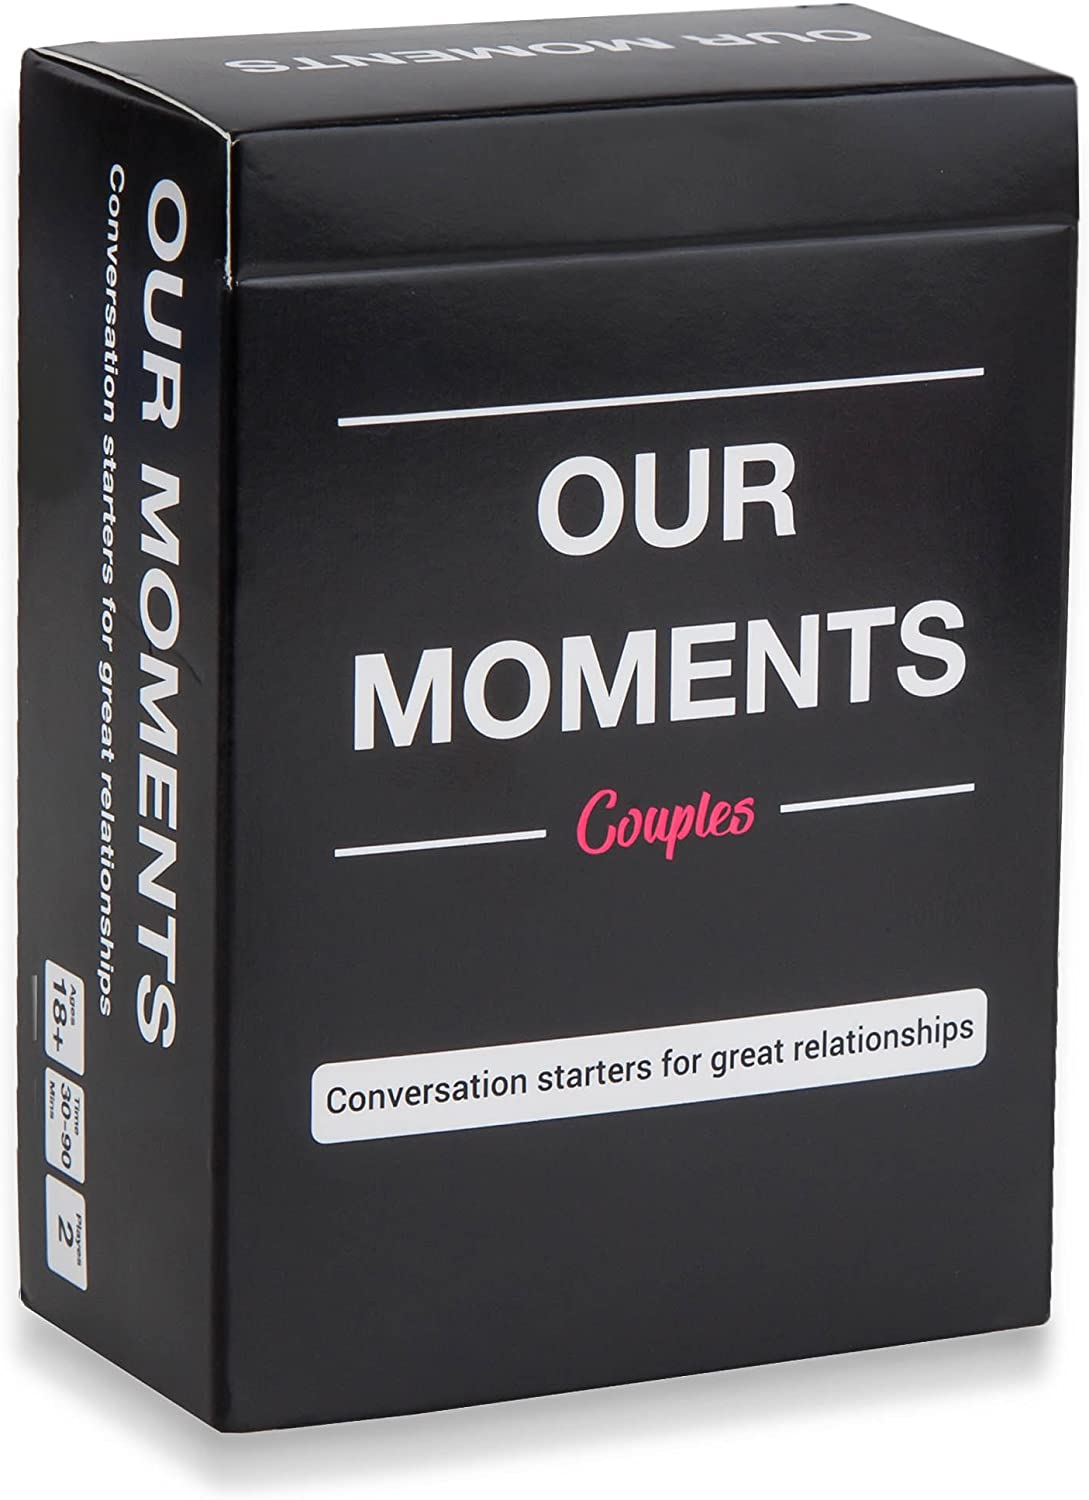 OUR MOMENTS Couples: 100 Thought Provoking